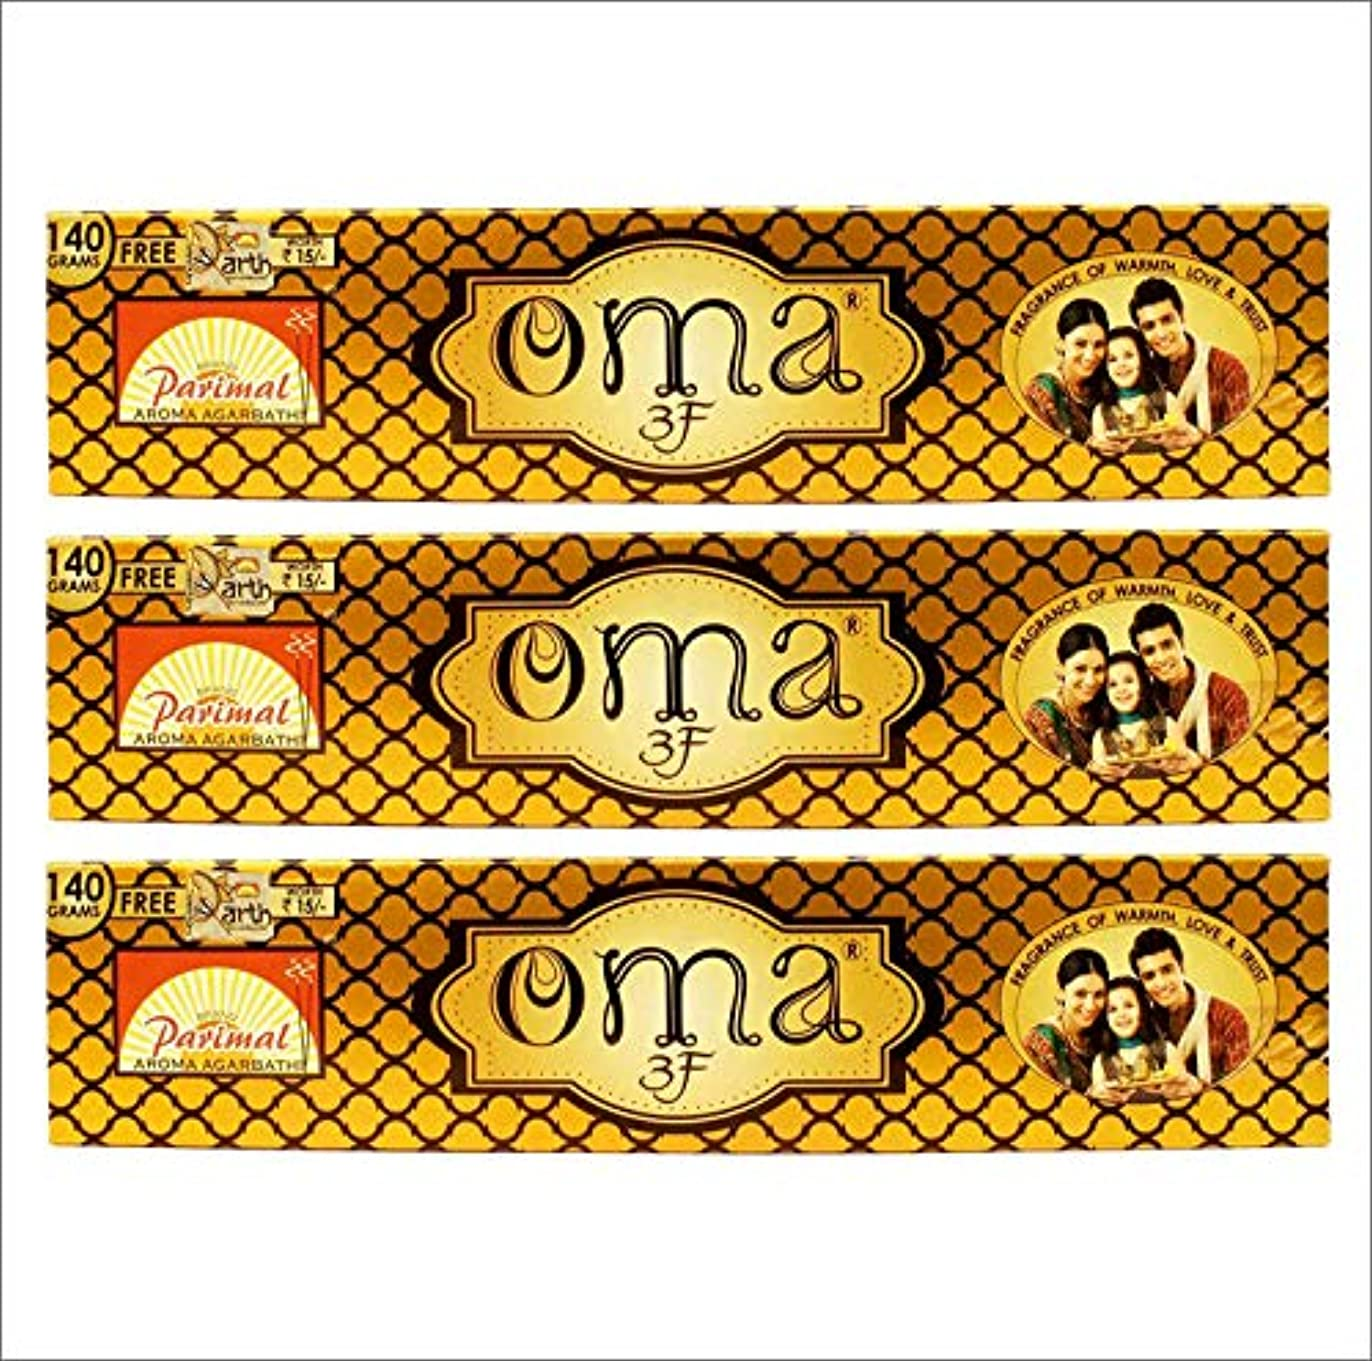 展示会思われる野生Parimal OMA 3F Incense Sticks